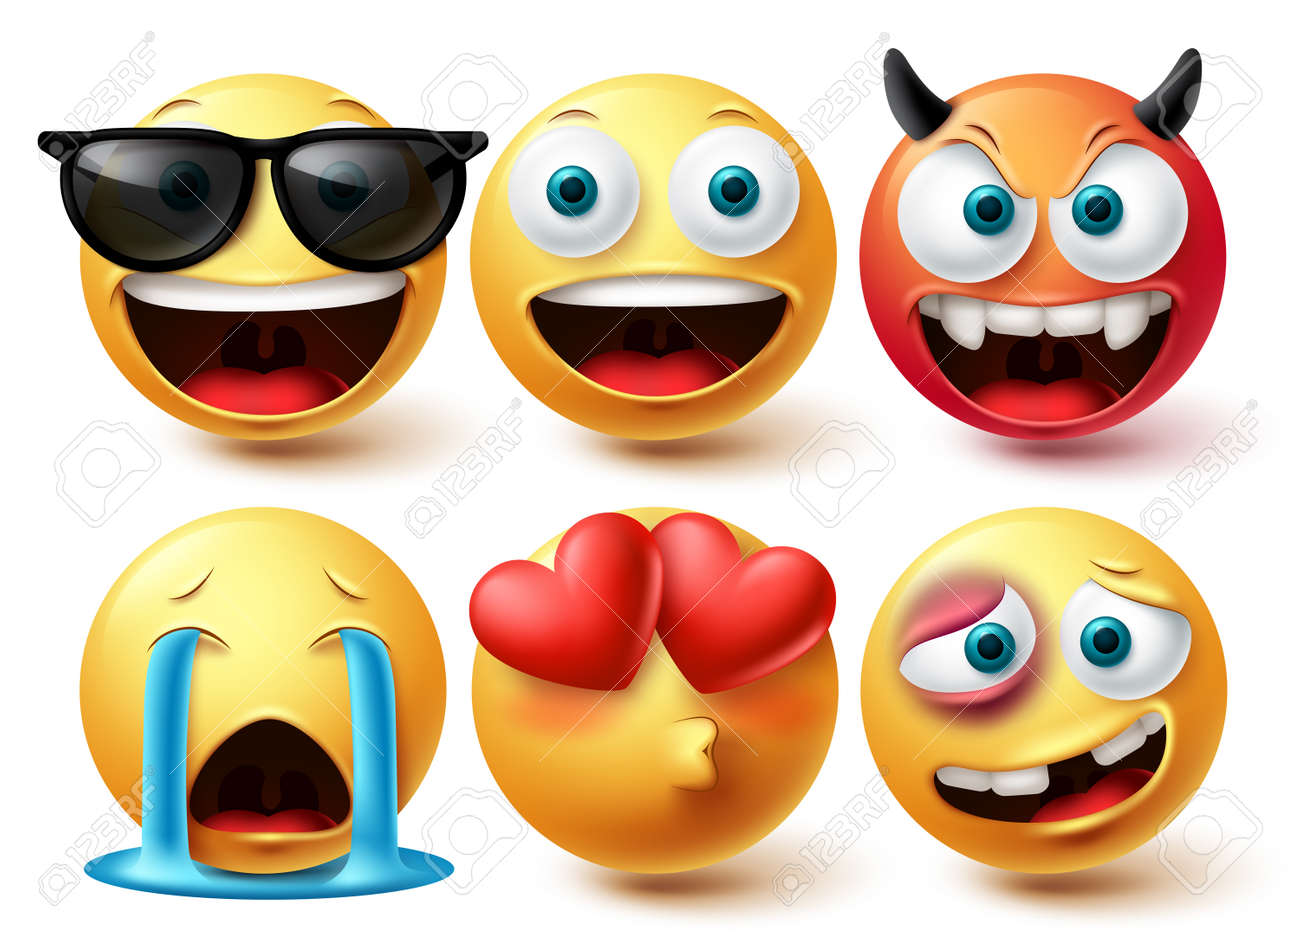 Smiley face vector set. Smileys emoji icon collection in isolated in white background for graphic design elements. Vector illustration - 171930971